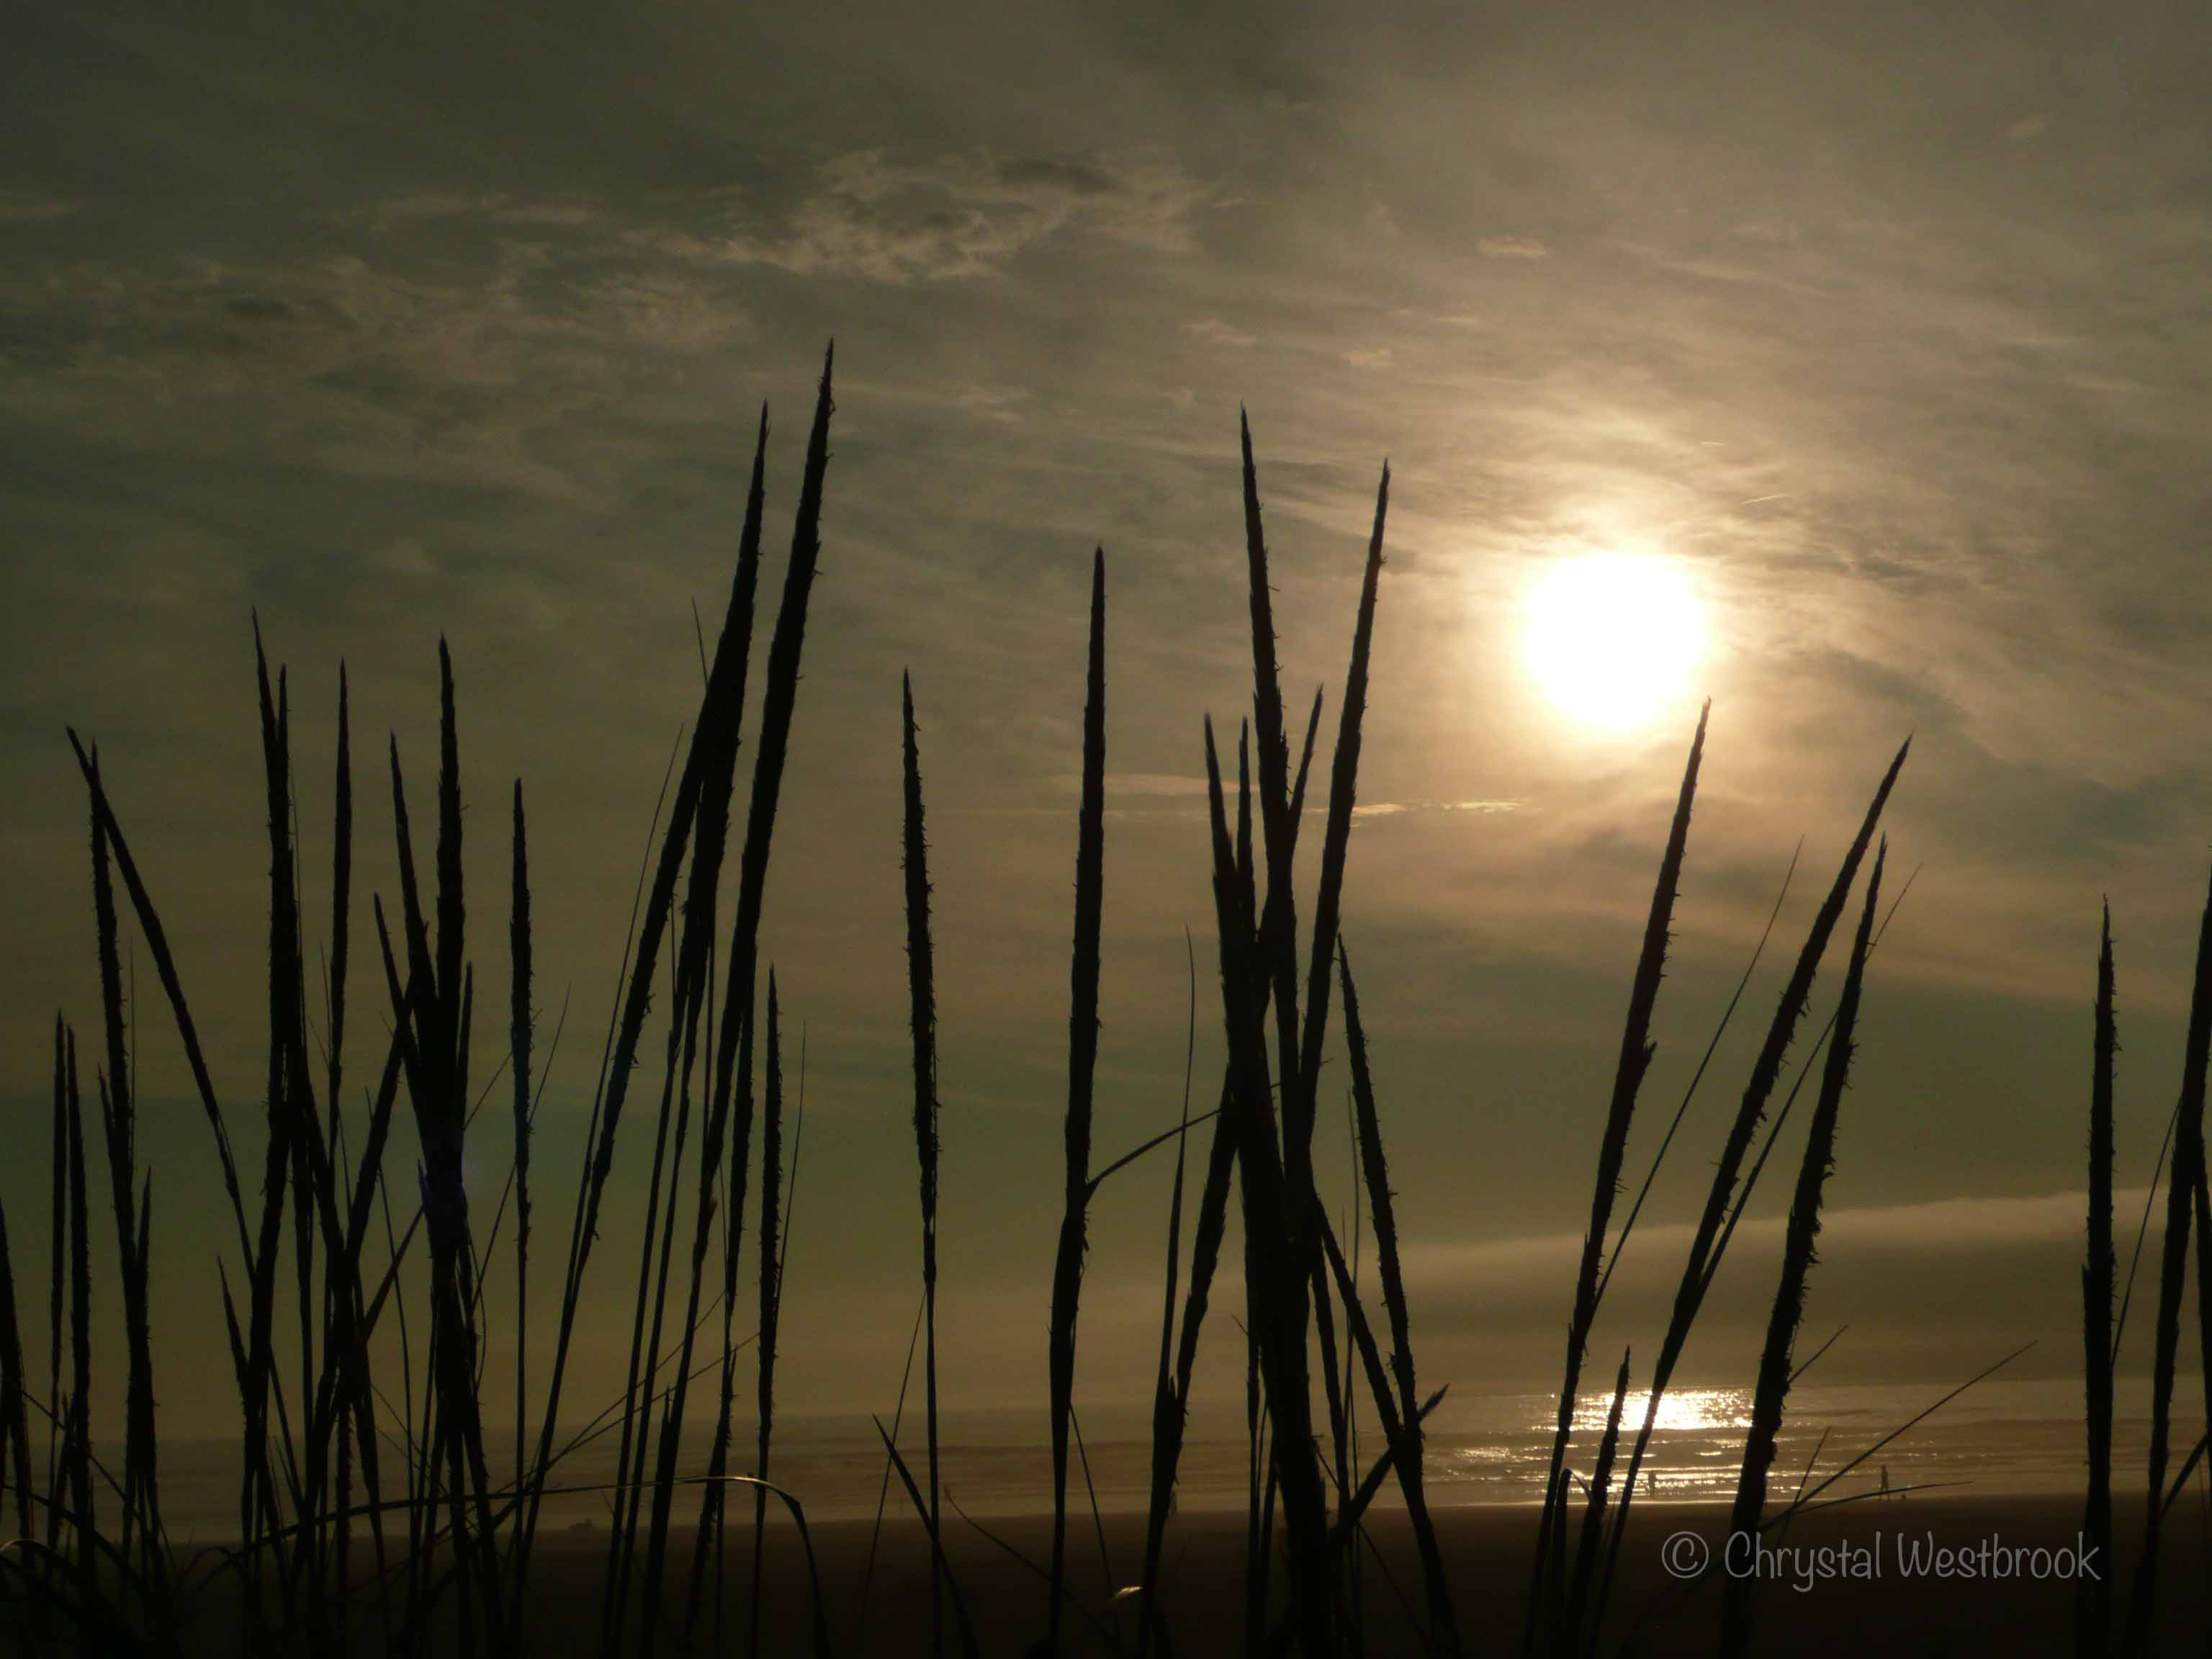 [IMAGE] Silhouette of sea grass at sunset